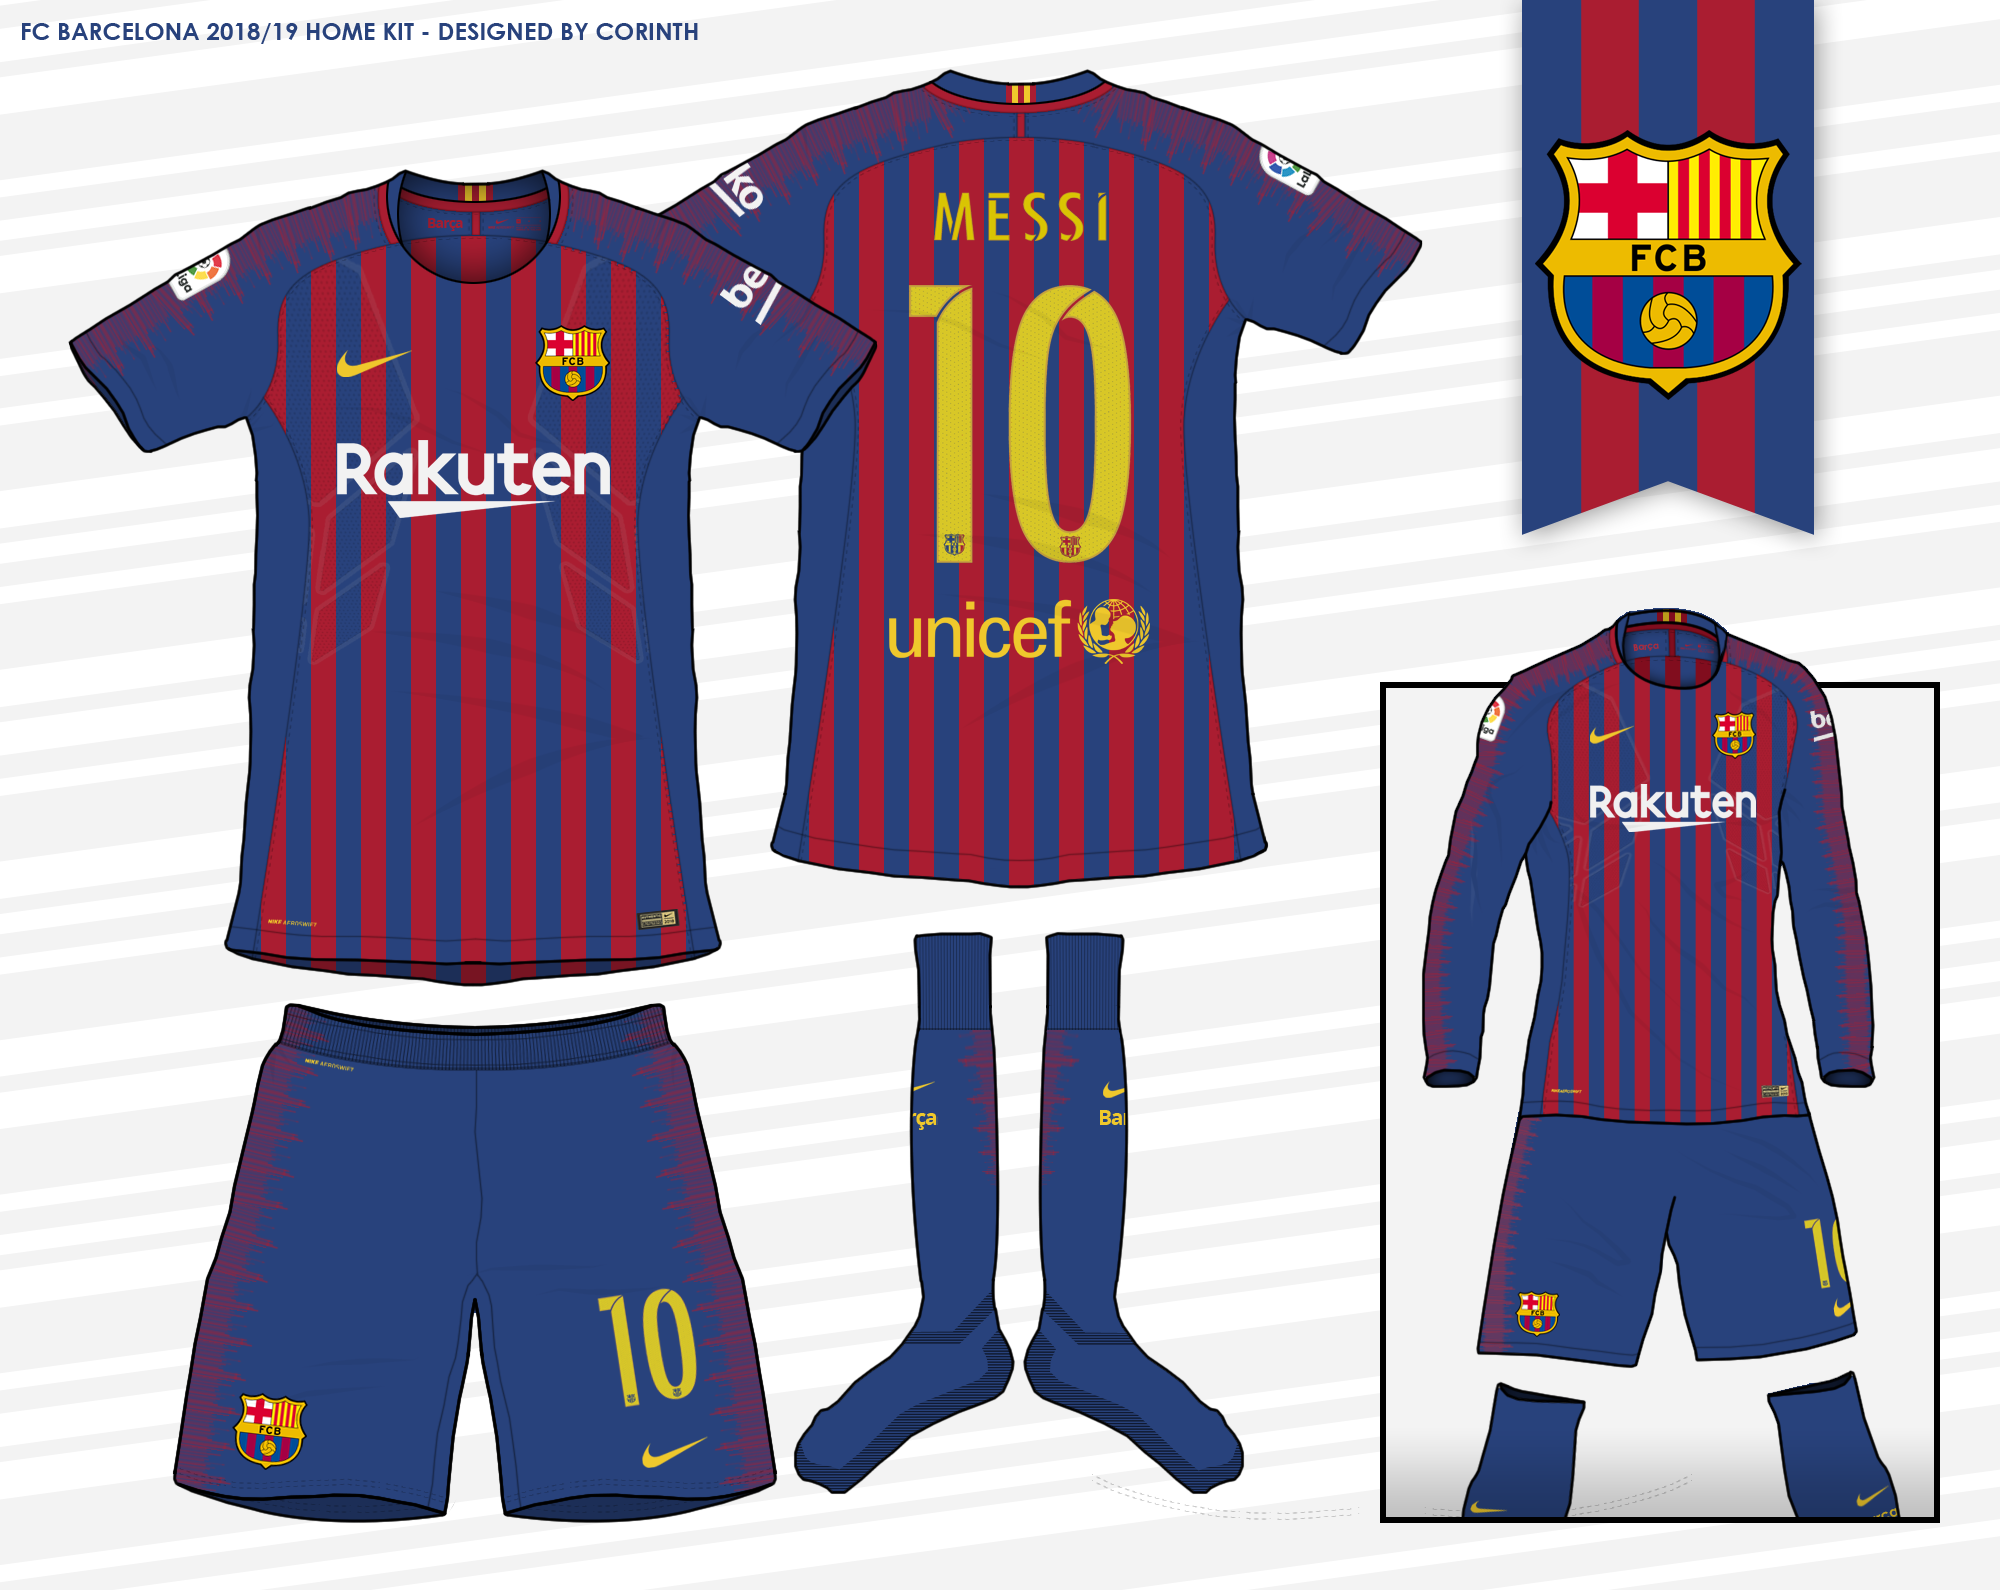 new product 2f494 e74c3 FC Barcelona - 2018 / 2019 Home Kit (According to leaks)